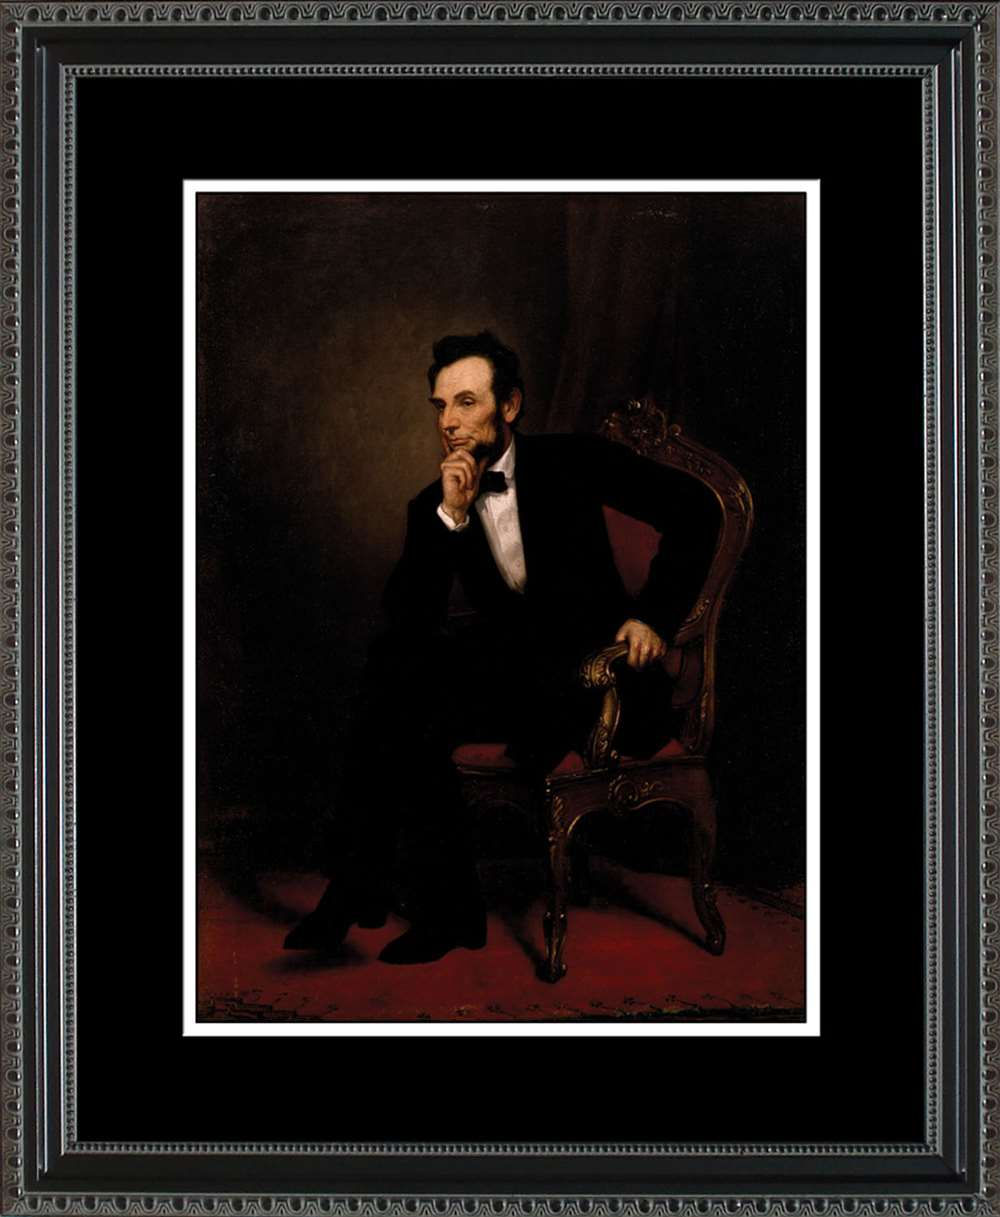 Abraham Lincoln Official Portrait, 16x20